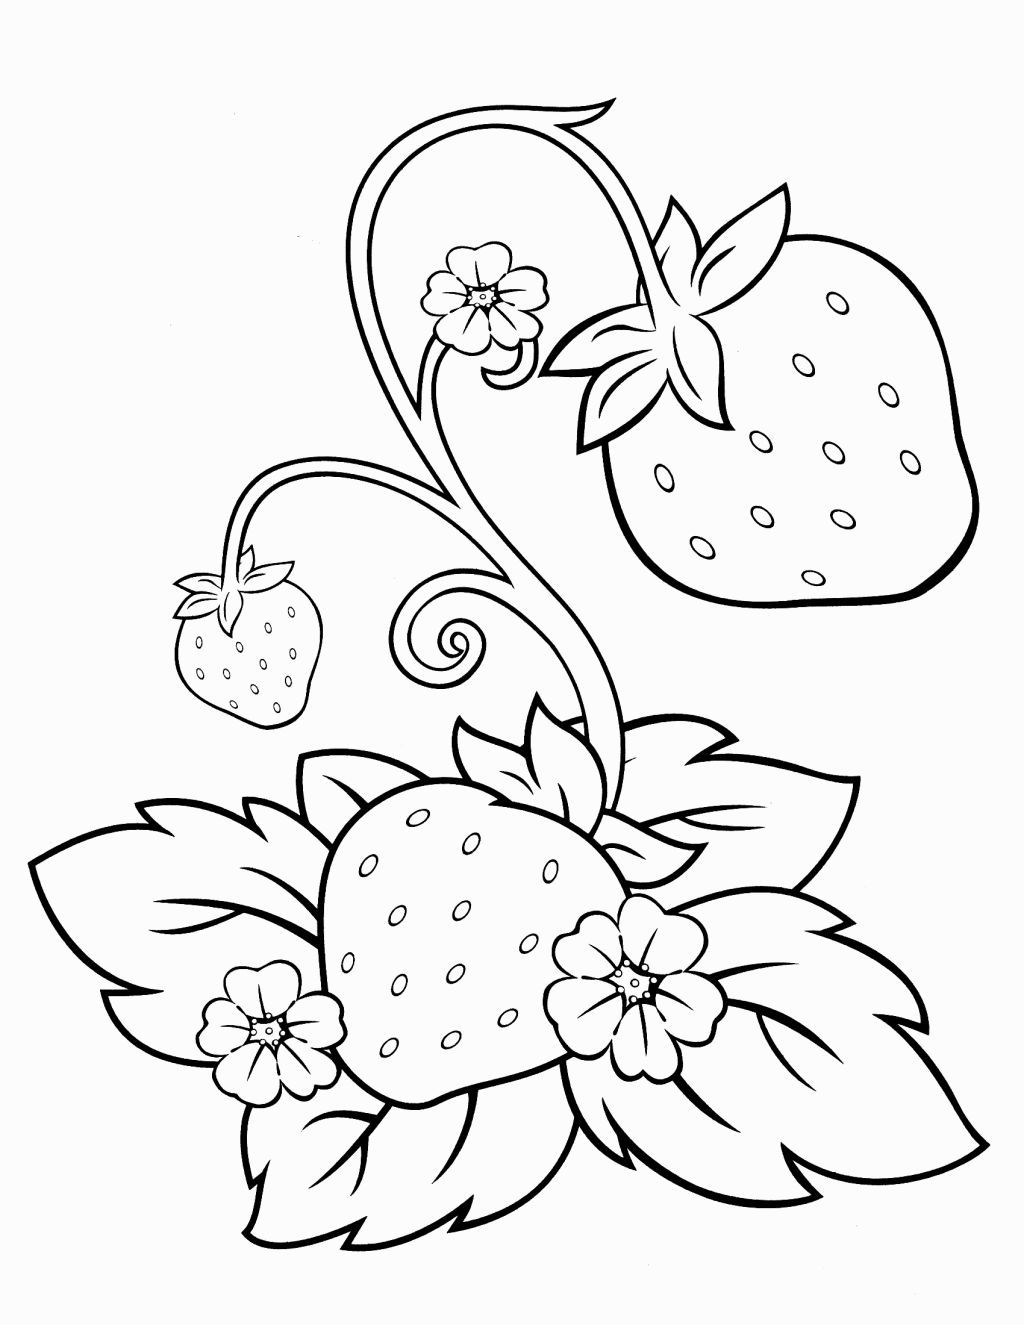 Coloring Strawberry   Coloring Pages   Pinterest